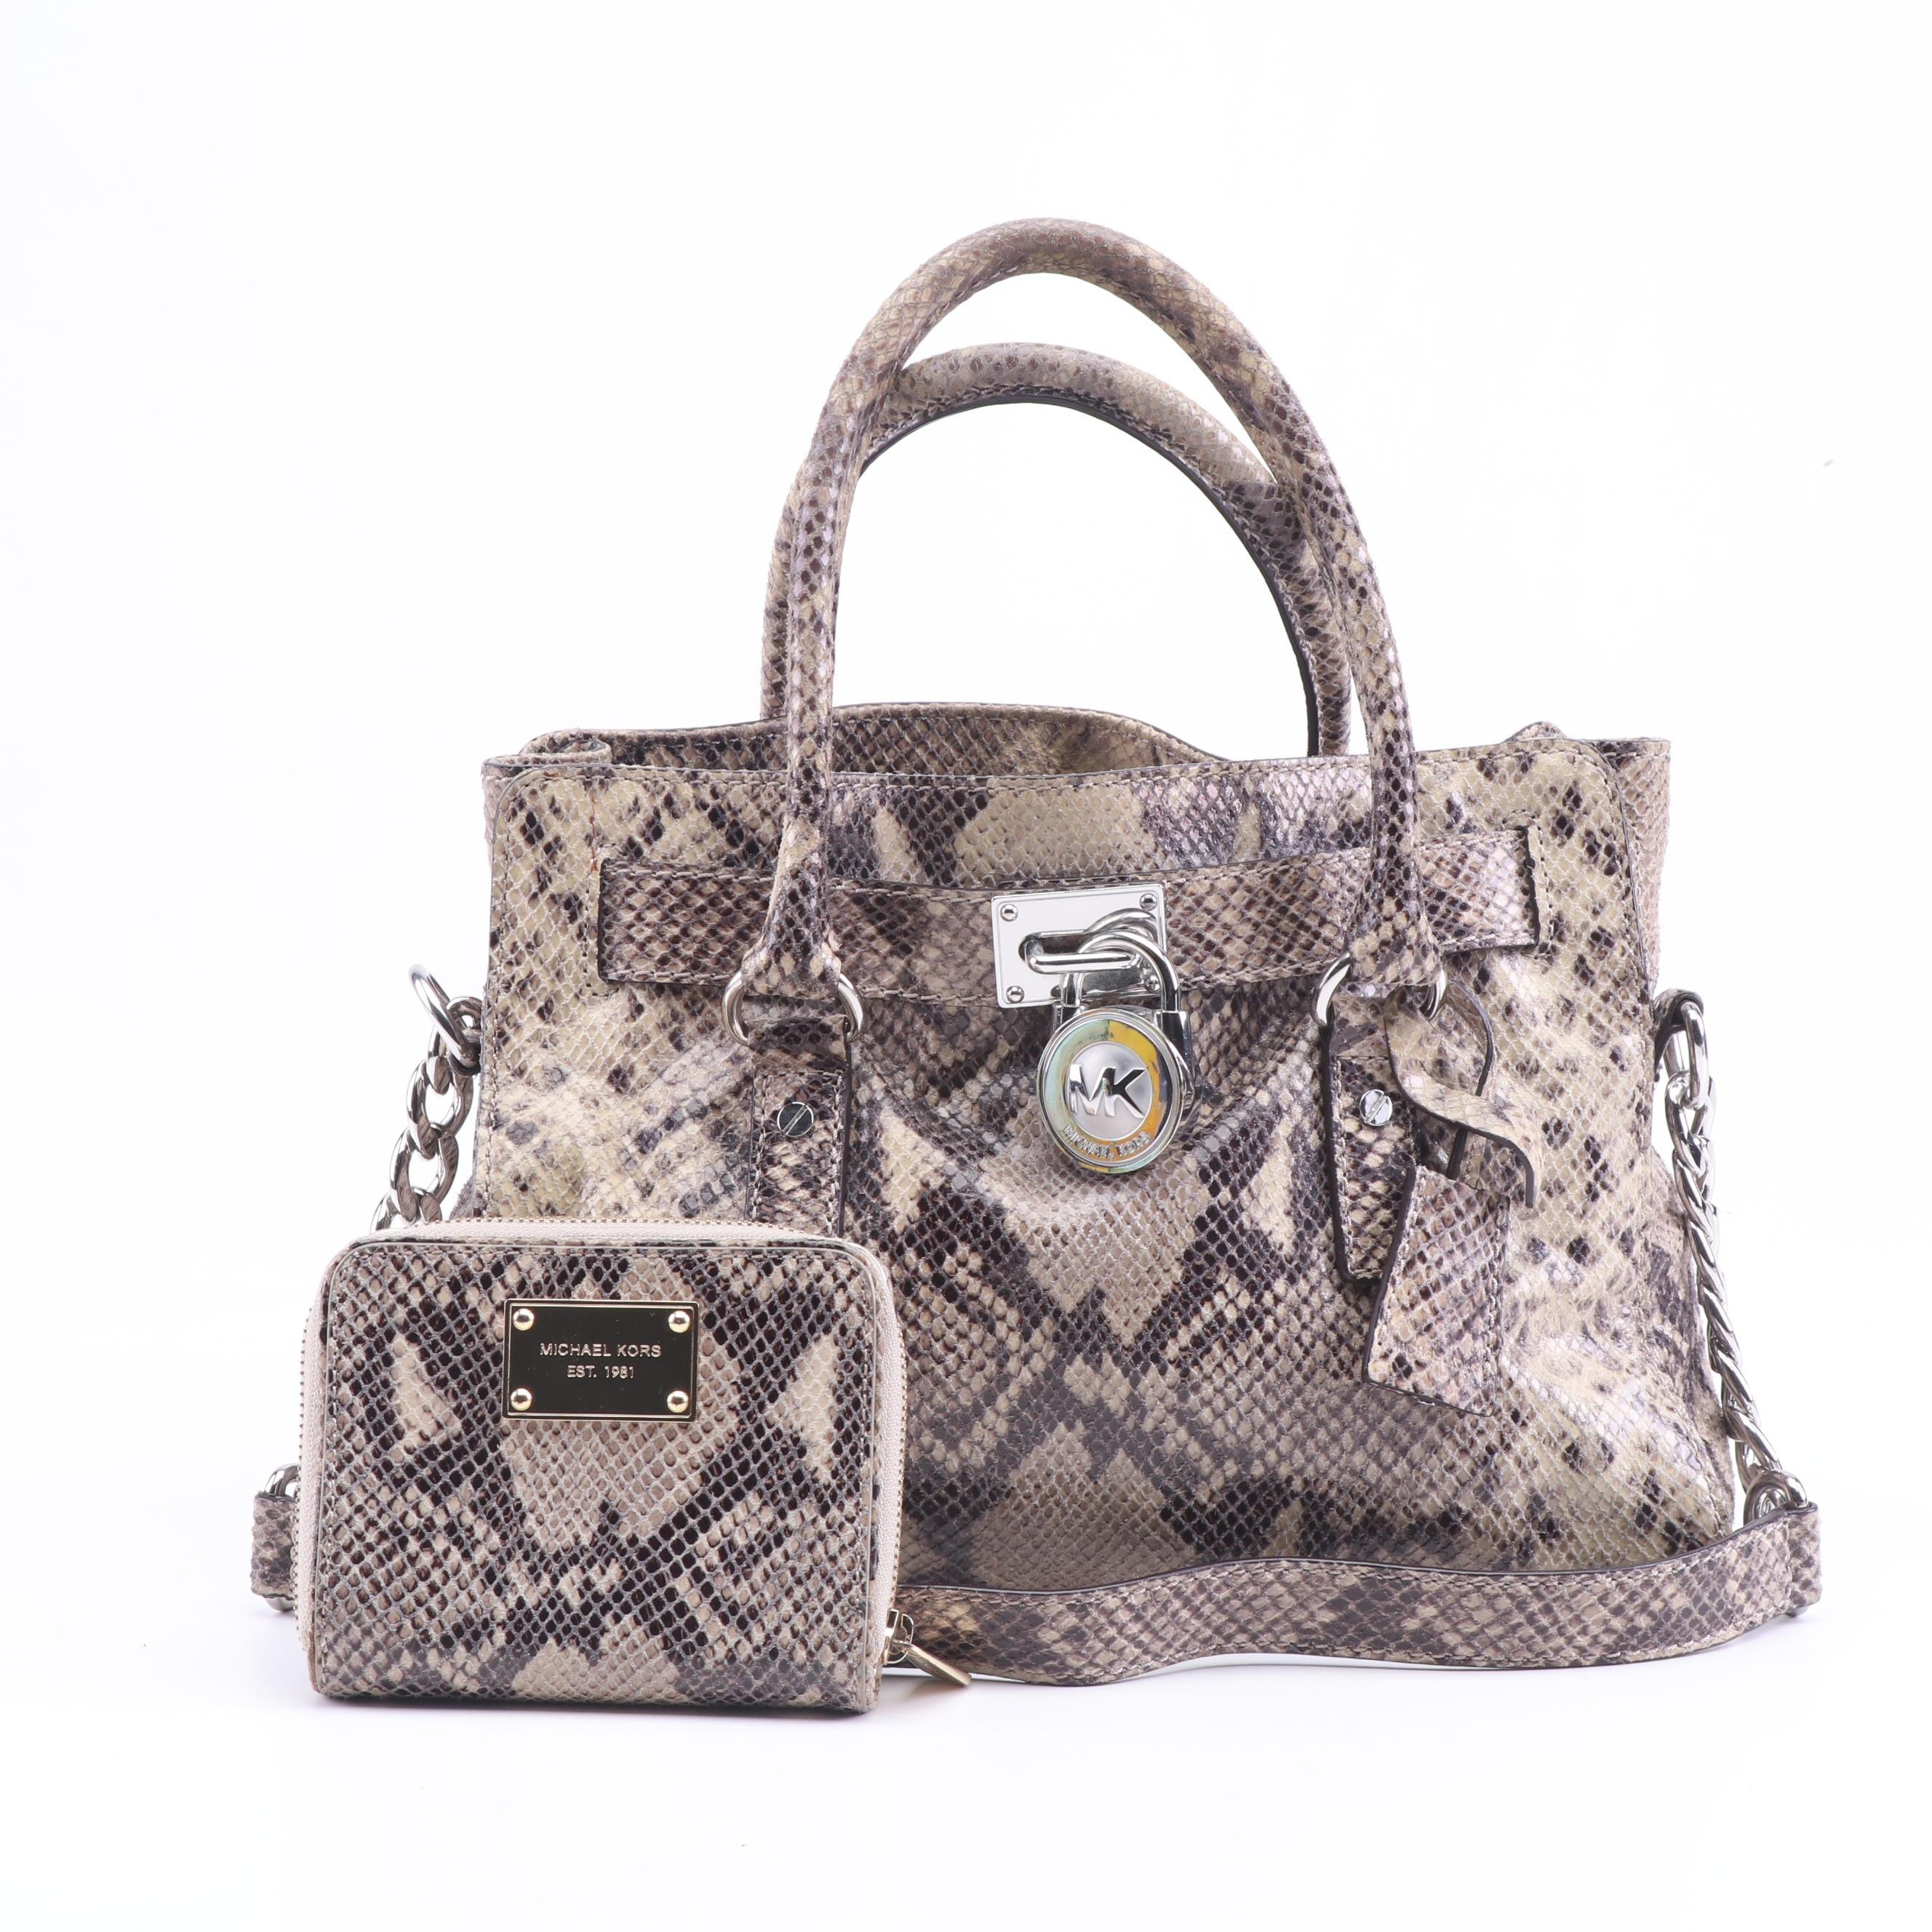 MICHAEL Michael Kors Hamilton Python Embossed Leather Convertible Bag and Wallet